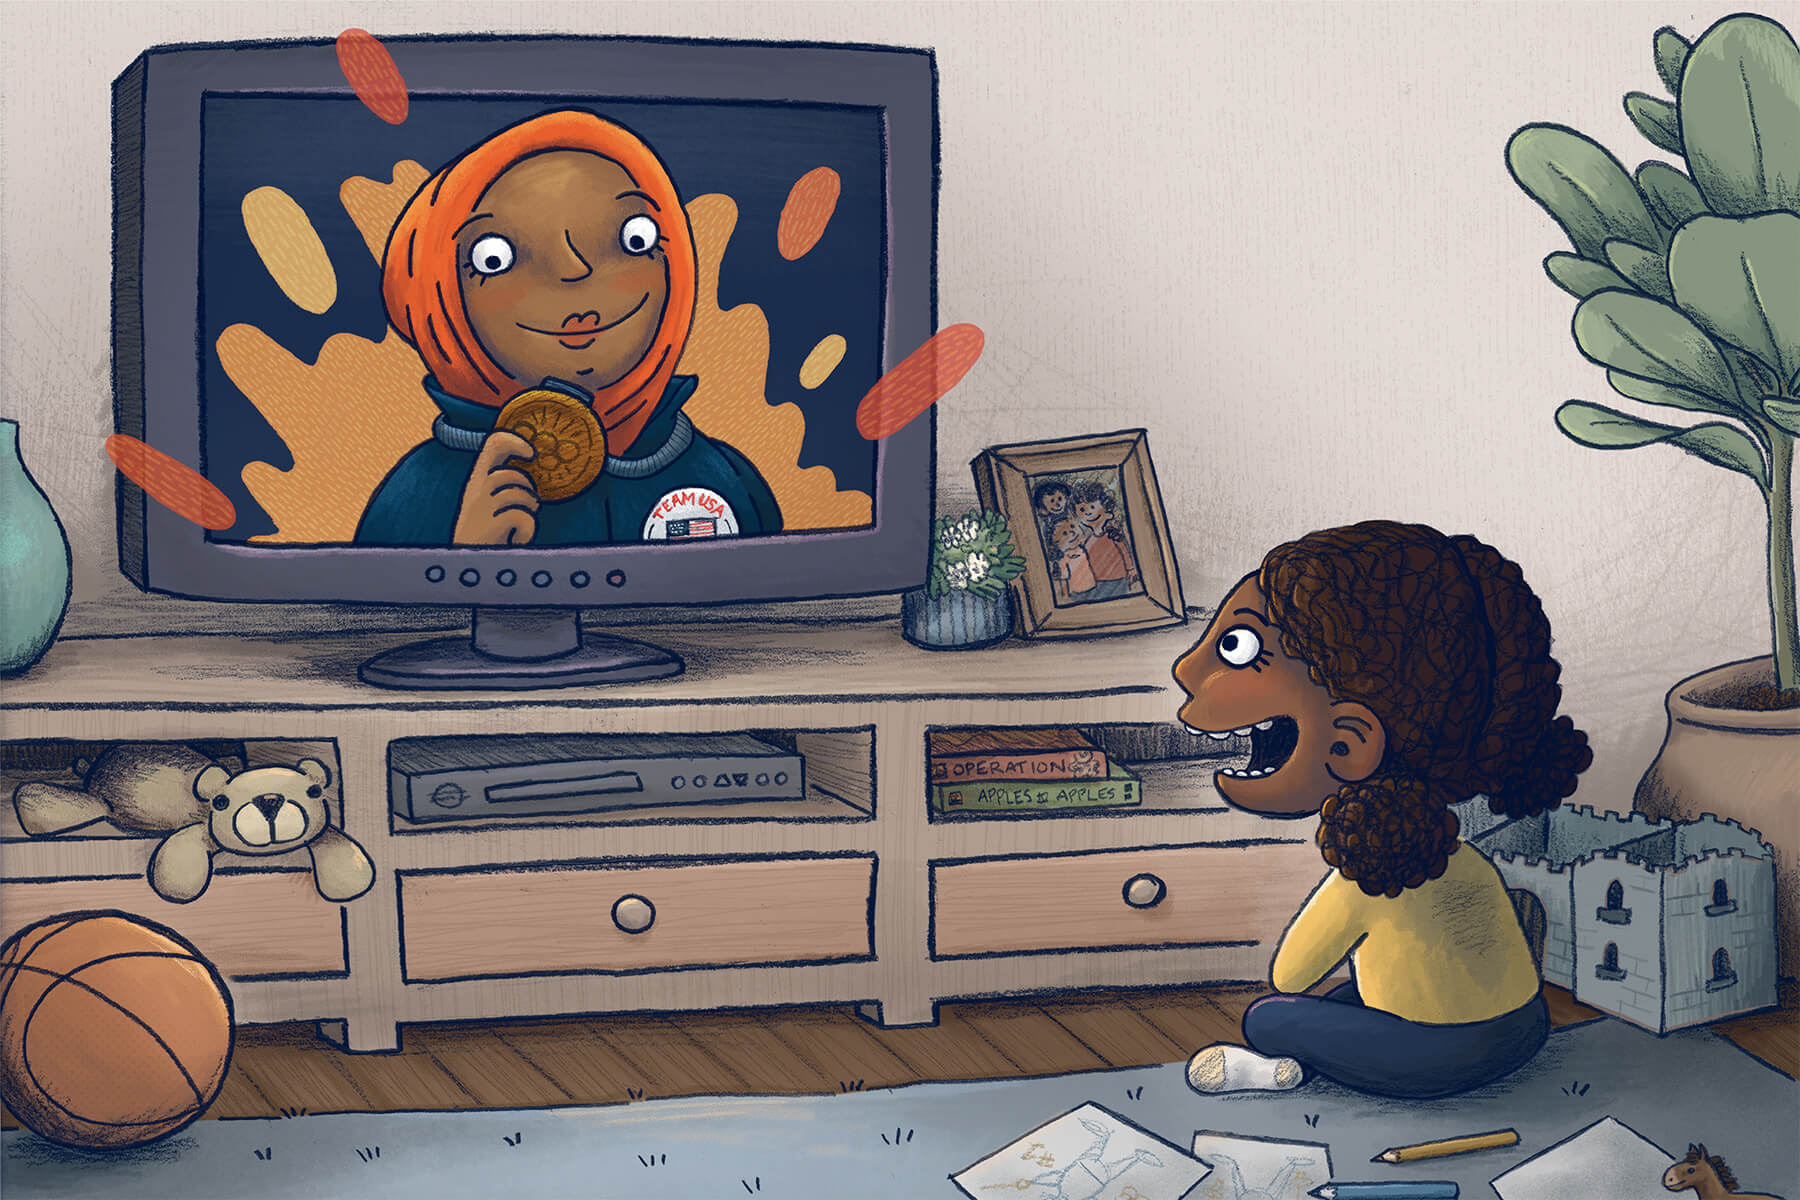 Children's illustration of olympic fencer Ibtihaj Muhammad serving as a role model for young girls